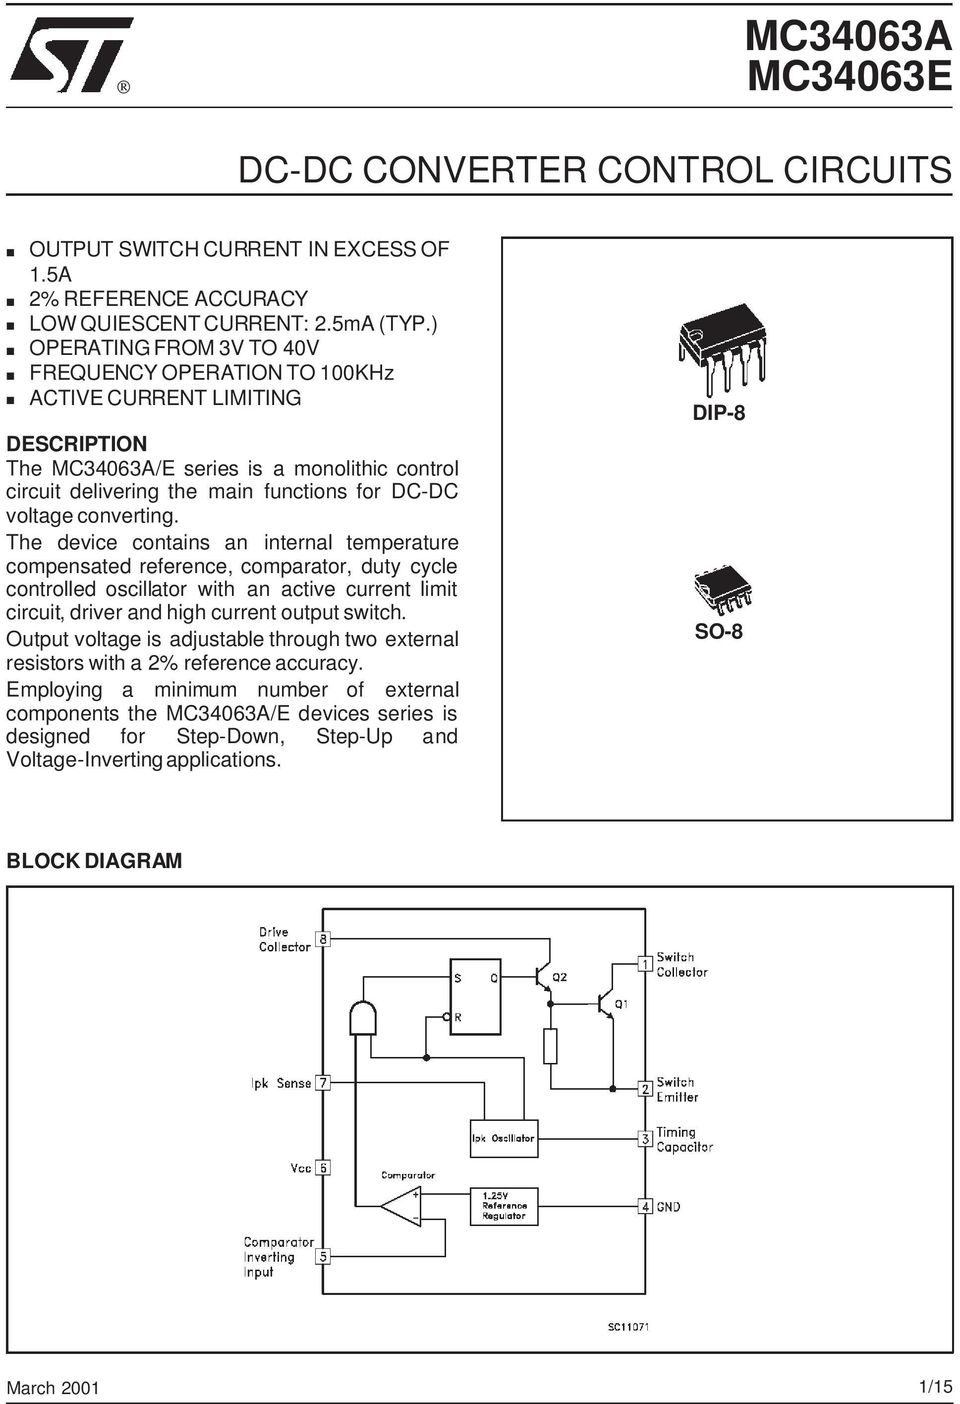 Mc34063a Mc34063e Dc Converter Control Circuits Pdf The Stepup Device Contains An Internal Temperature Compensated Reference Comparator Duty Cycle Controlled